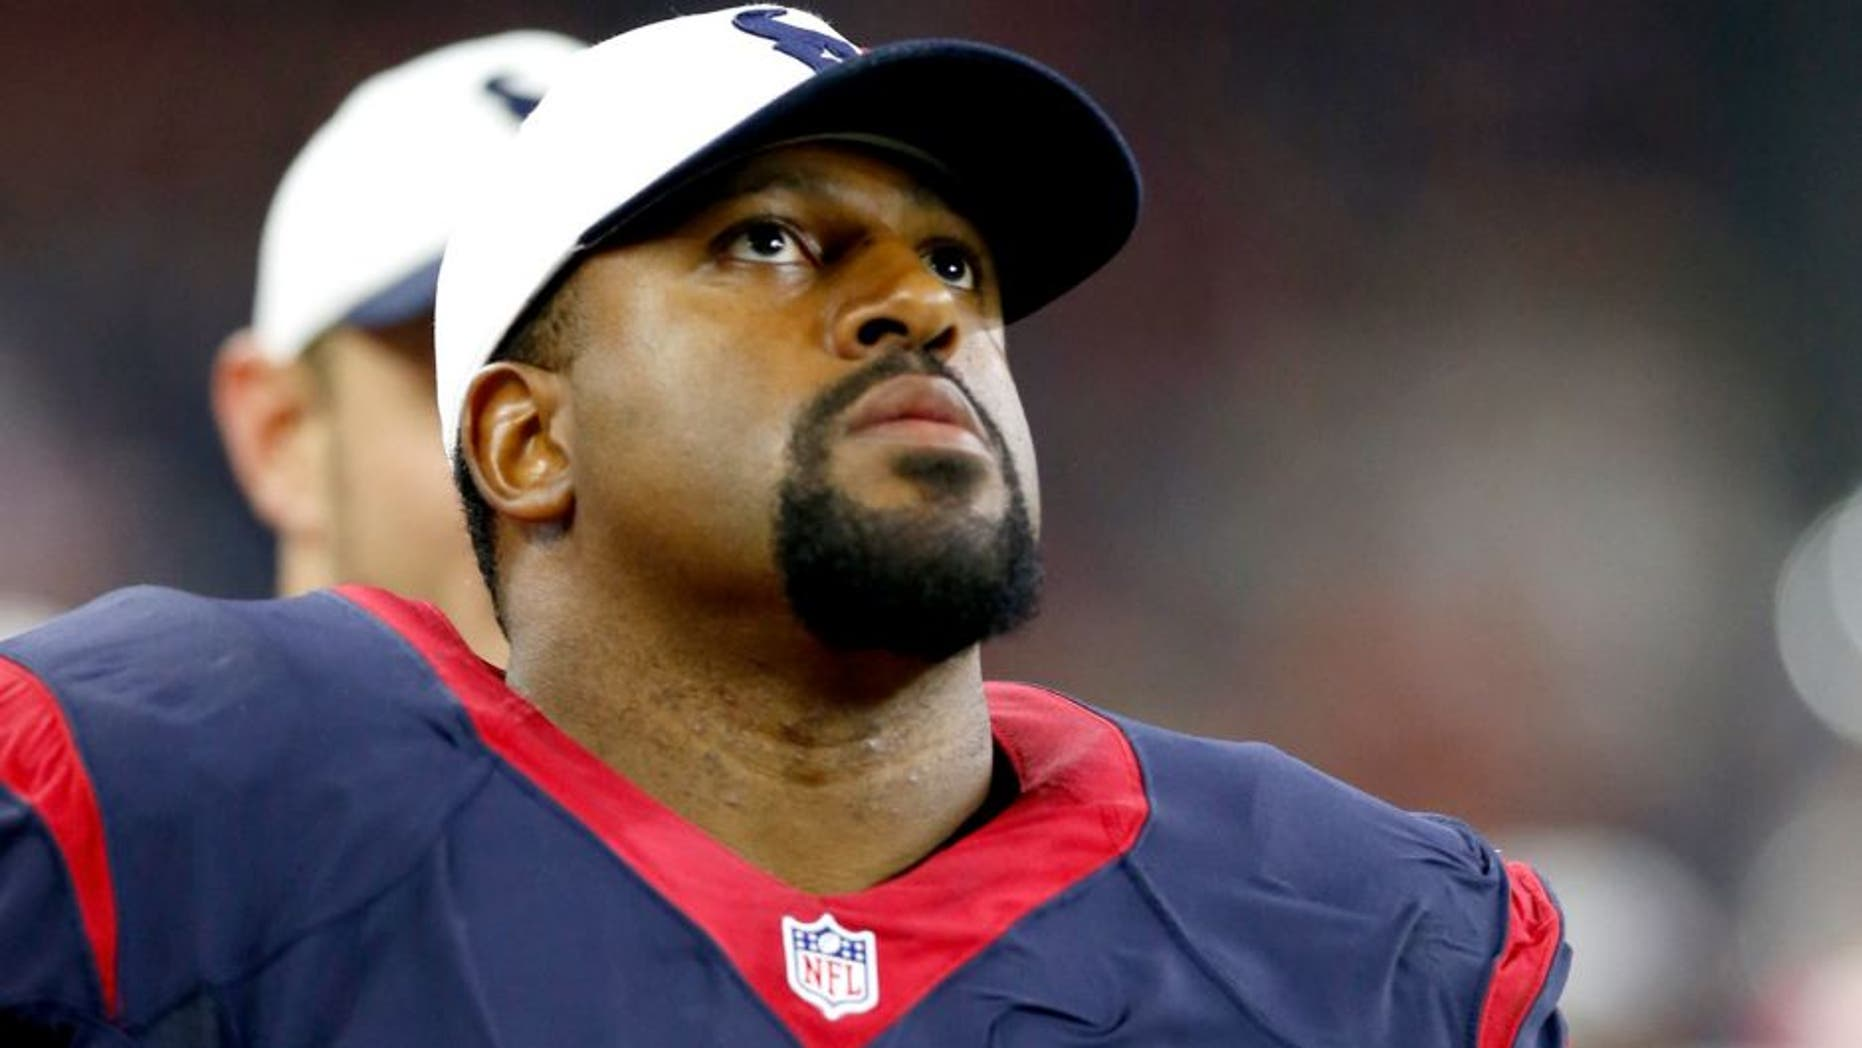 Aug 22, 2015; Houston, TX, USA; Houston Texans tackle Duane Brown (76) on the sidelines during the second half against the Denver Broncos at NRG Stadium. The Broncos beat the Texans 14-10. Mandatory Credit: Matthew Emmons-USA TODAY Sports